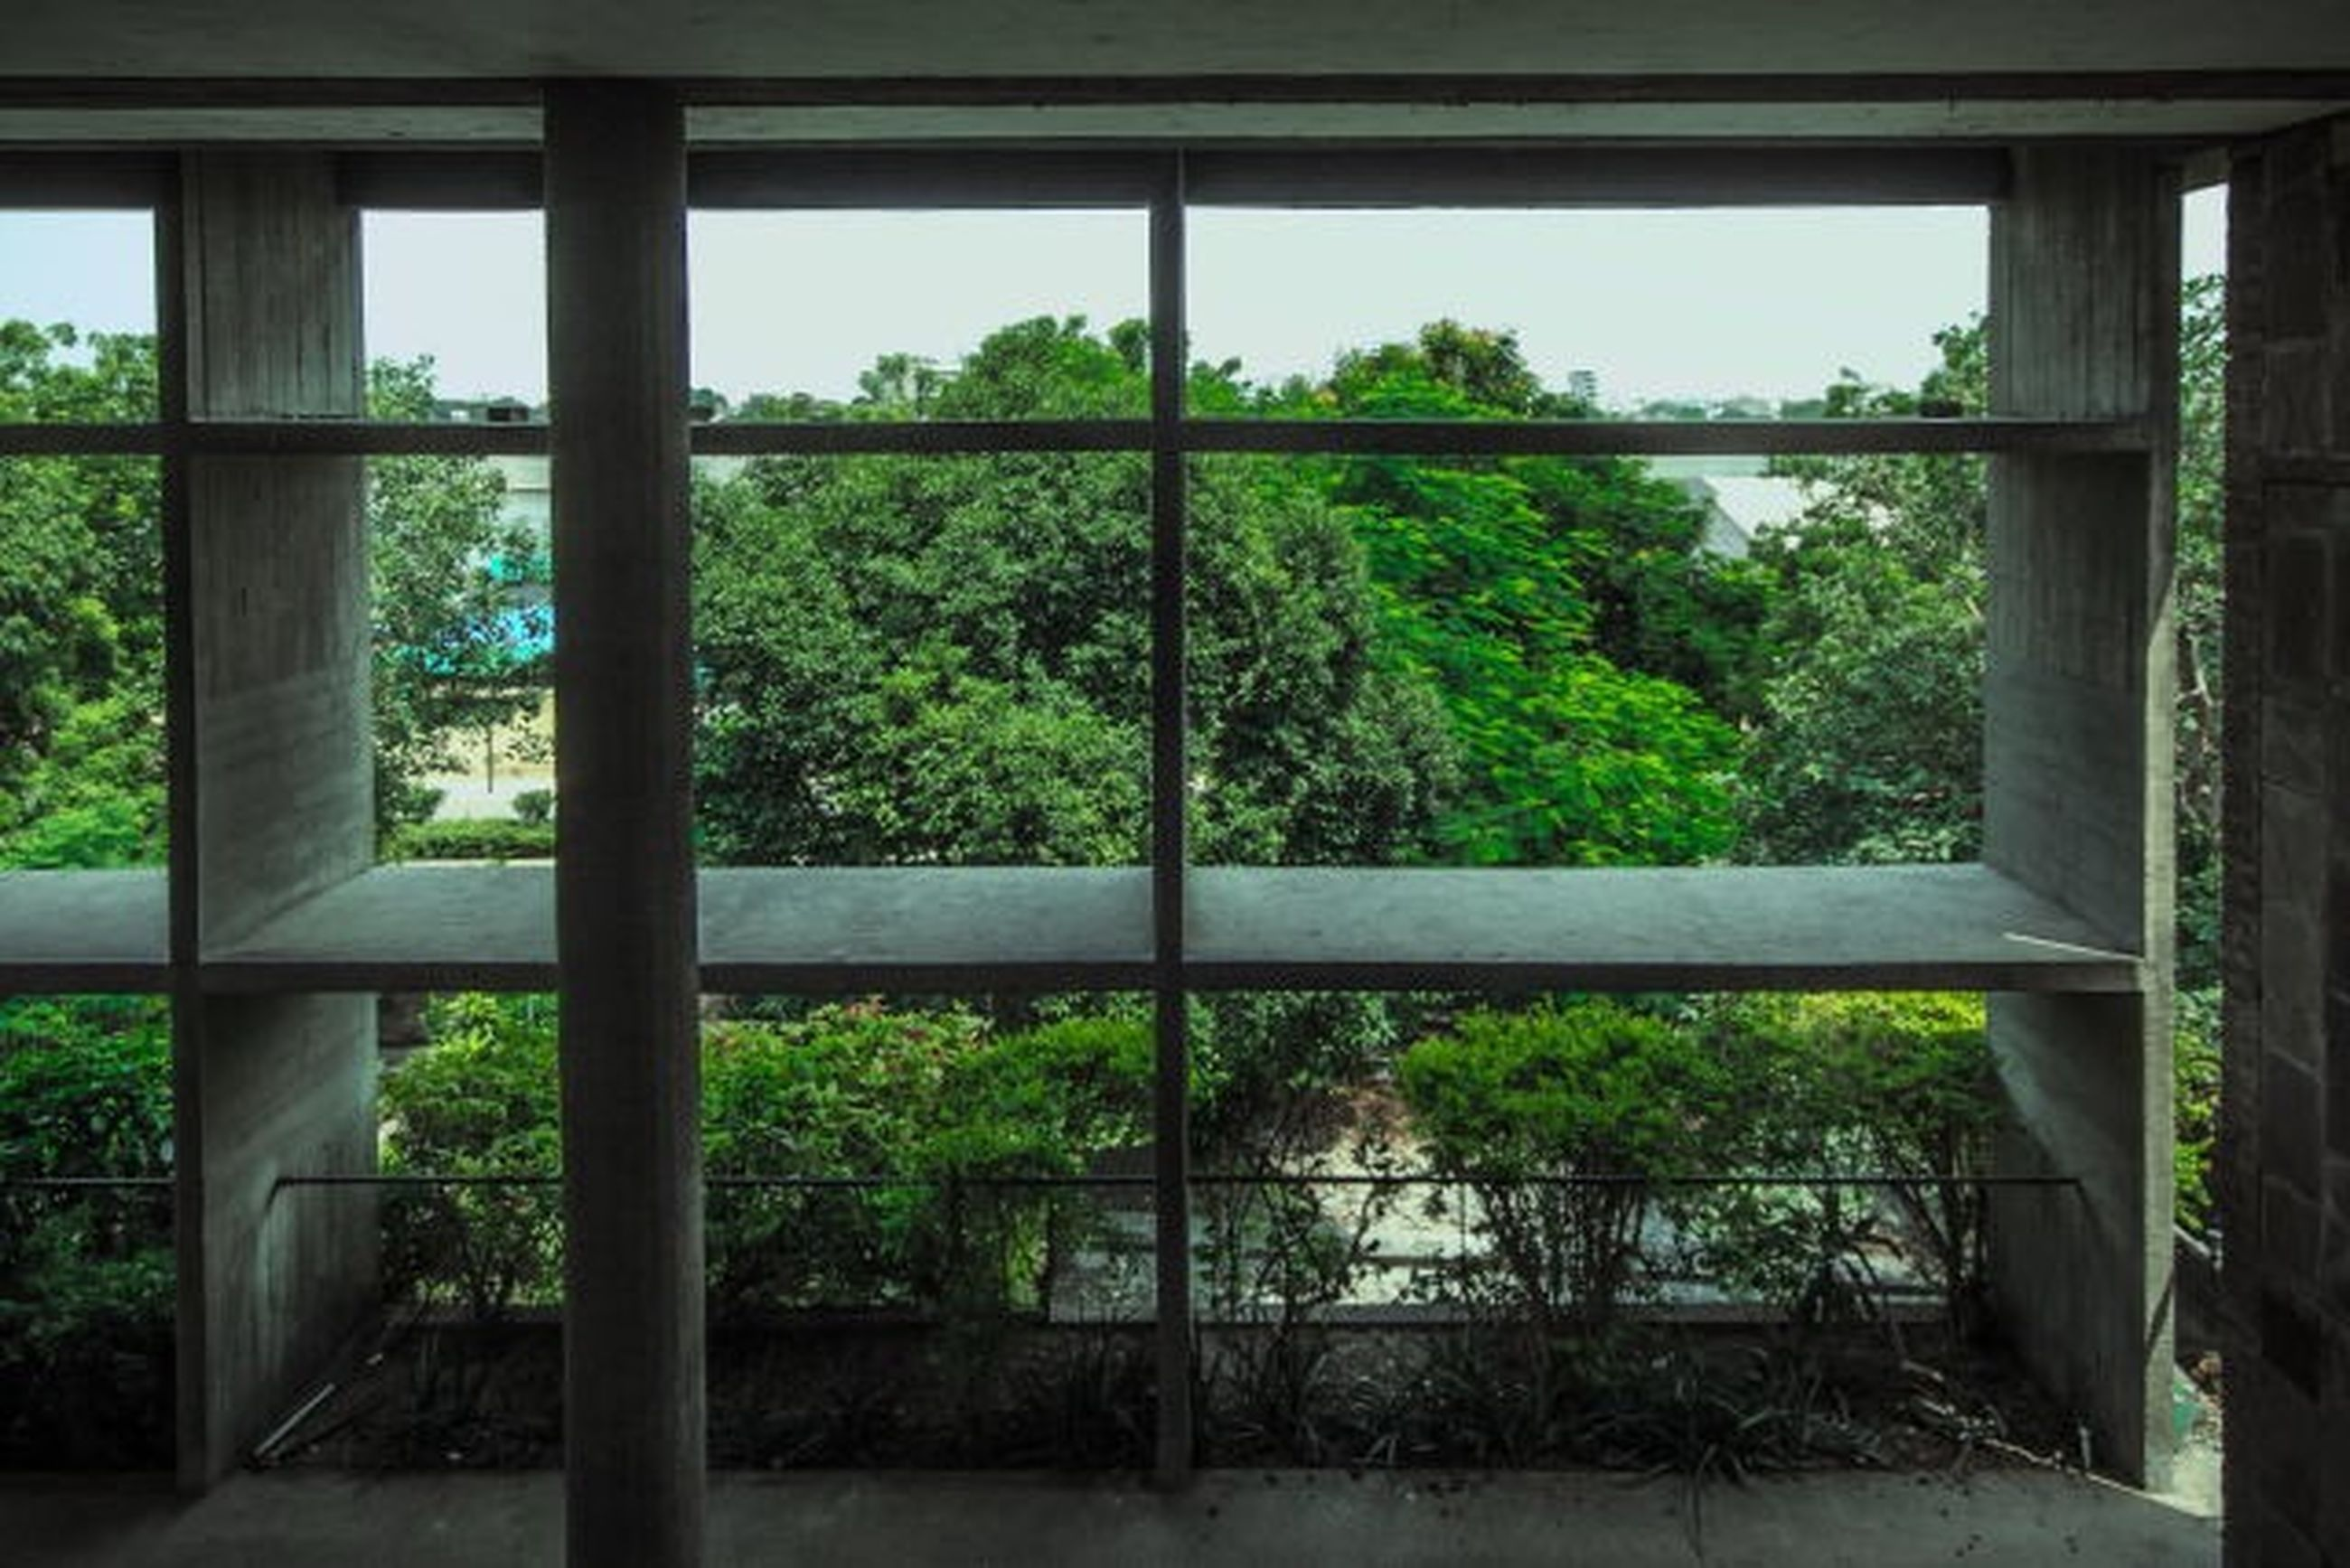 window, indoors, tree, glass - material, transparent, growth, plant, green color, built structure, house, day, architecture, looking through window, sunlight, nature, no people, glass, railing, open, home interior